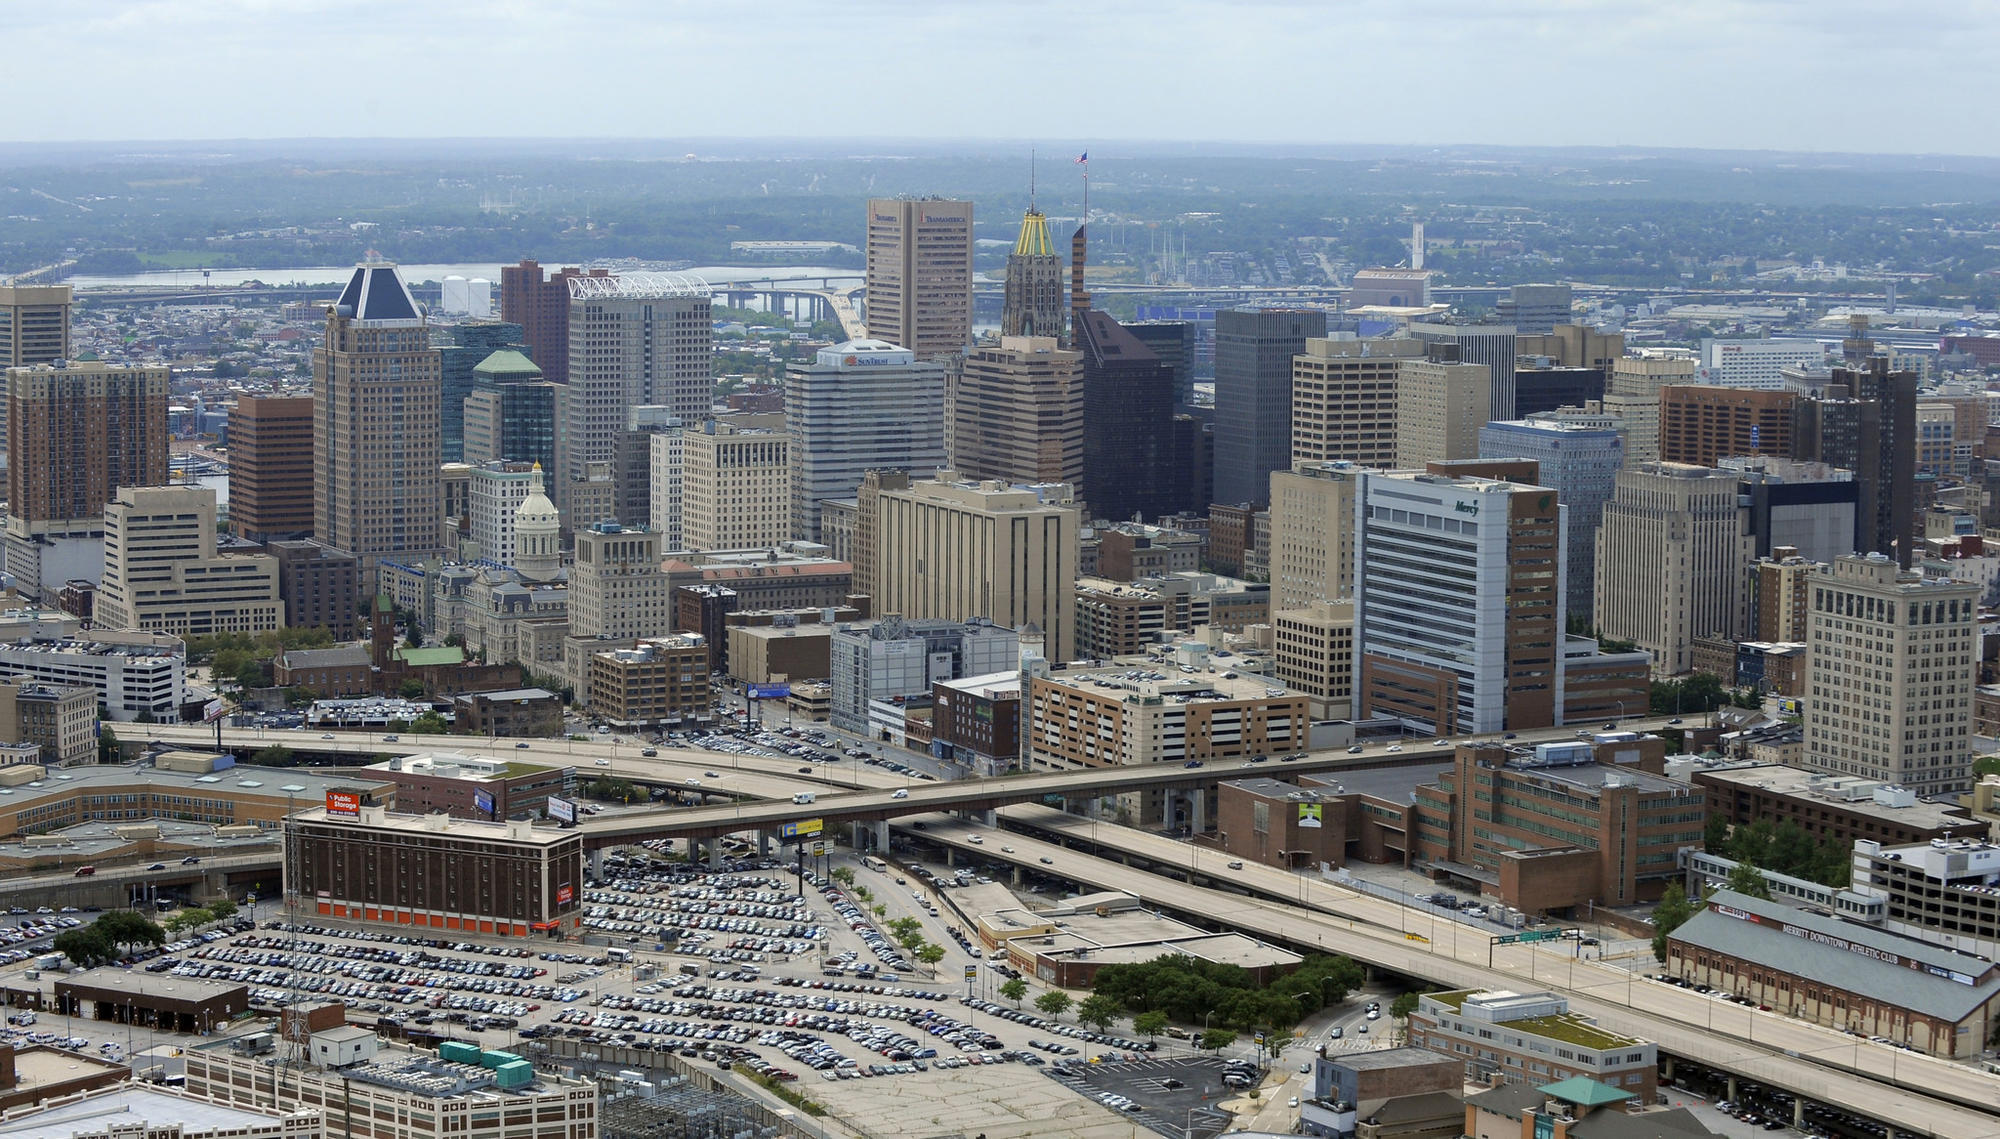 USA Today names Baltimore 'the nation's most dangerous city ...